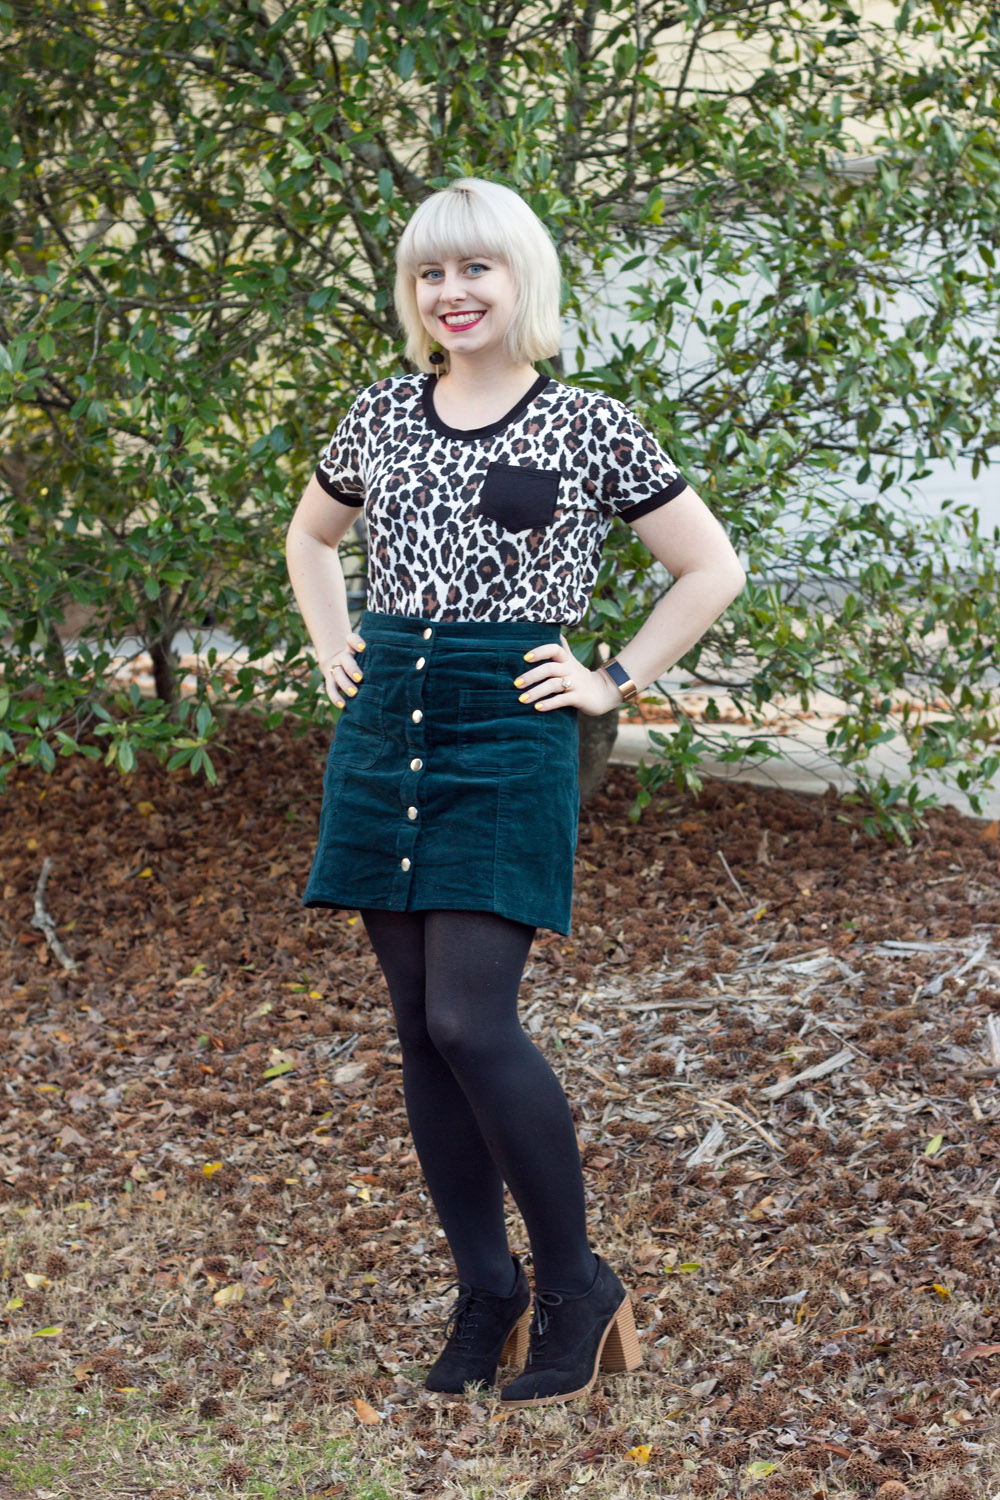 Boohoo Leopard Print Pocket Tee, Dark Green Corduroy Button Up Skirt, Black Block Heel Boots